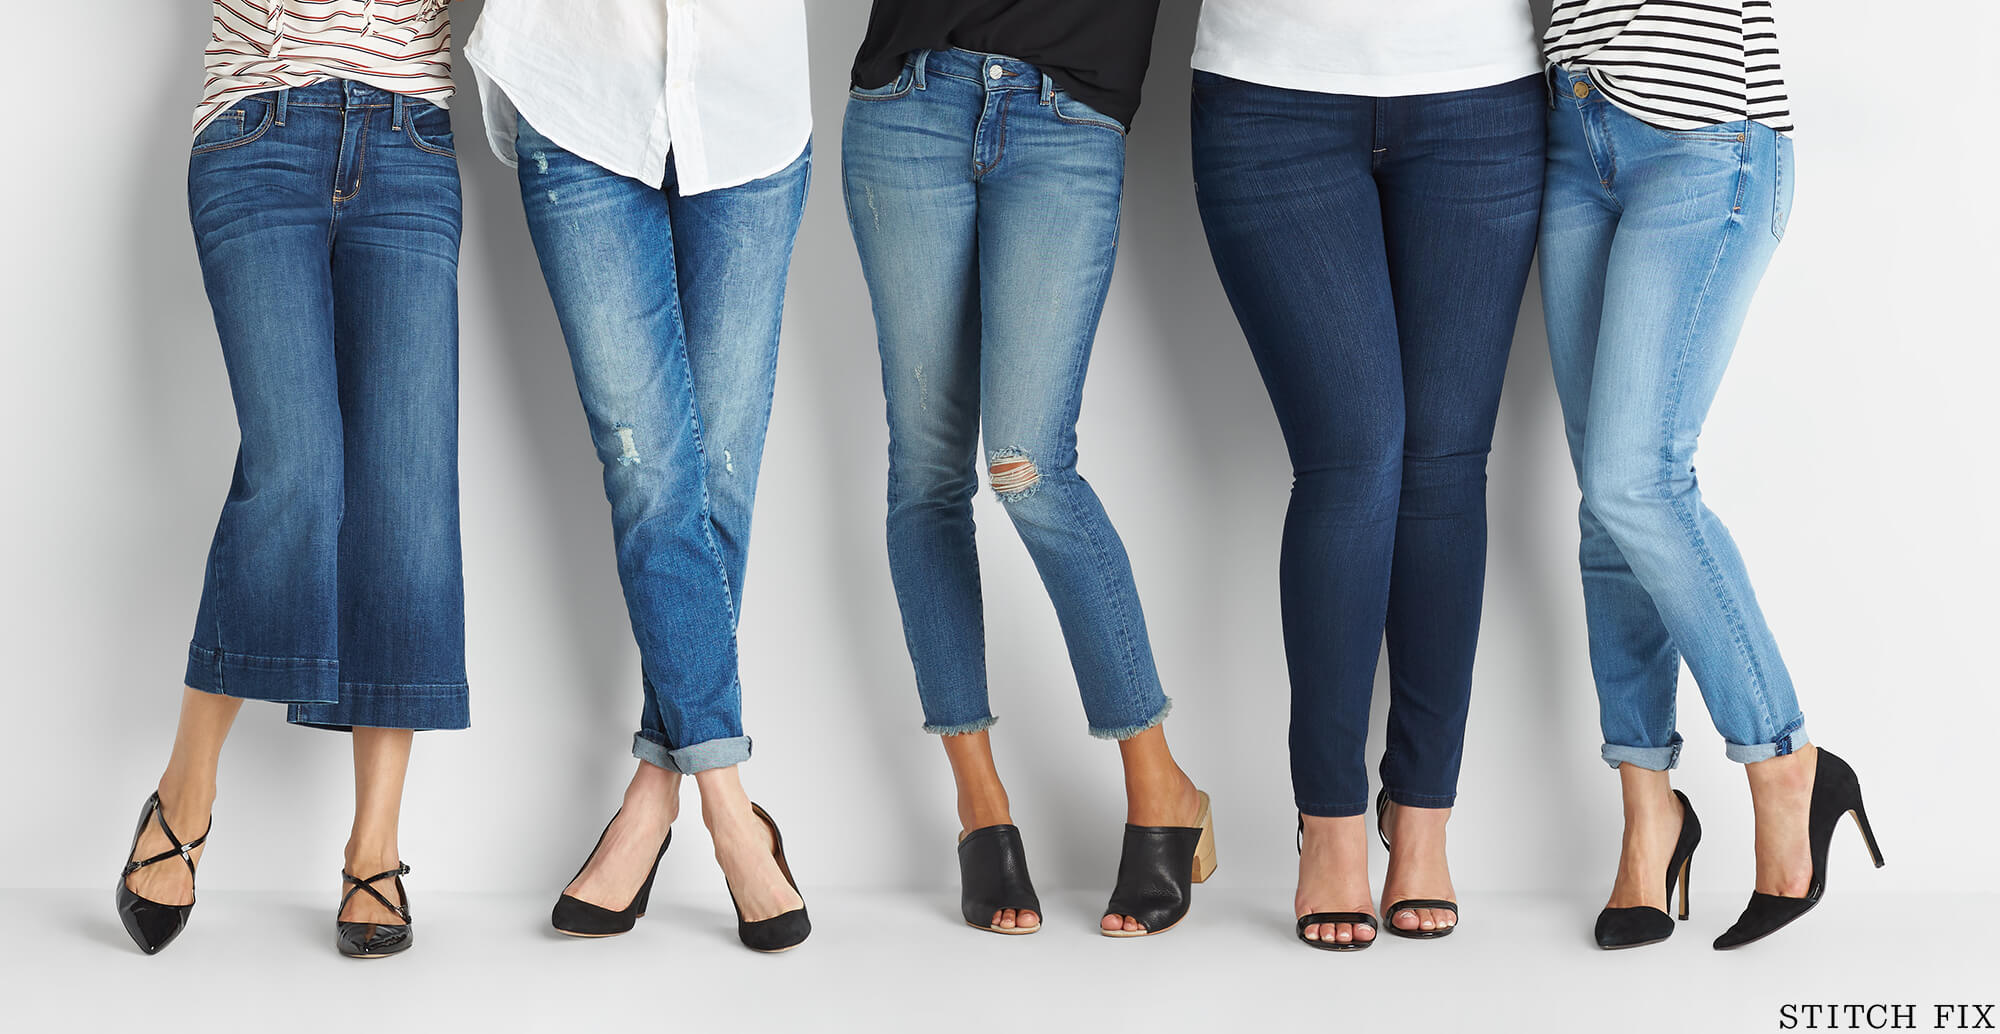 d8125e2ee47f3 Your Perfect Jeans | Find the Jeans for Your Body Shape | Stitch Fix Style